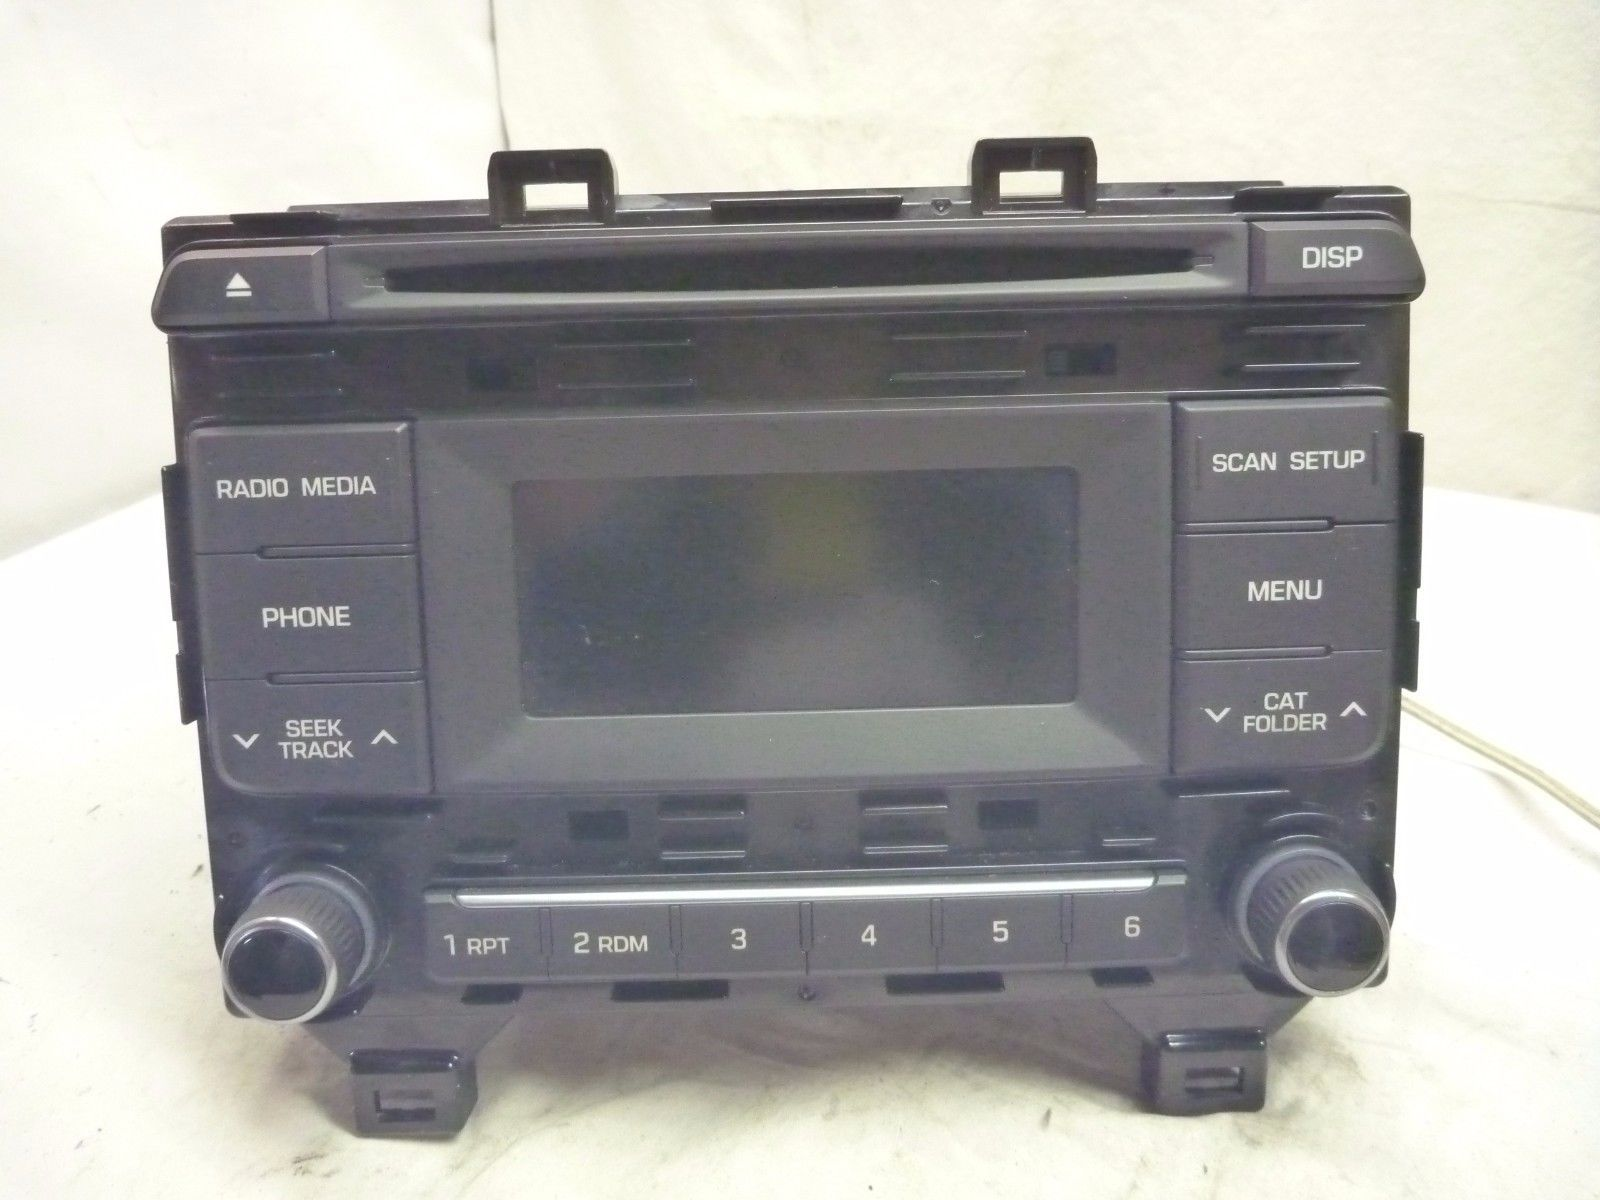 15 2015 Hyundai Sonata Radio Cd MP3 Player 96170-C20004X WB14